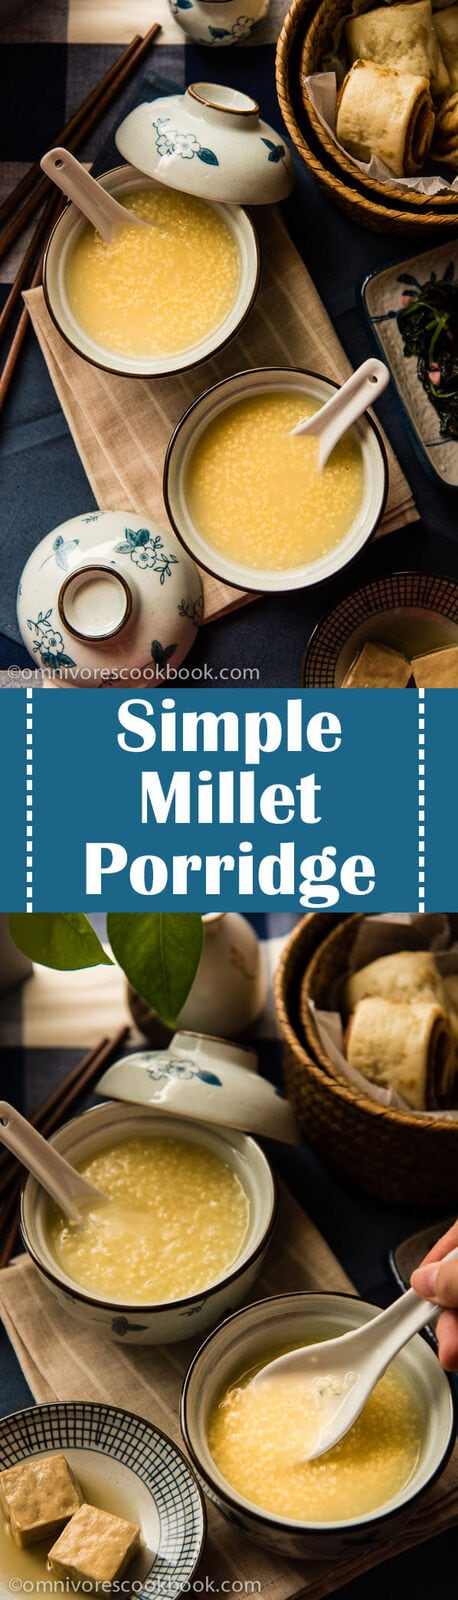 Millet Porridge - an easy, comforting, and versatile side that takes only 30 minutes to make | omnivorescookbook.com